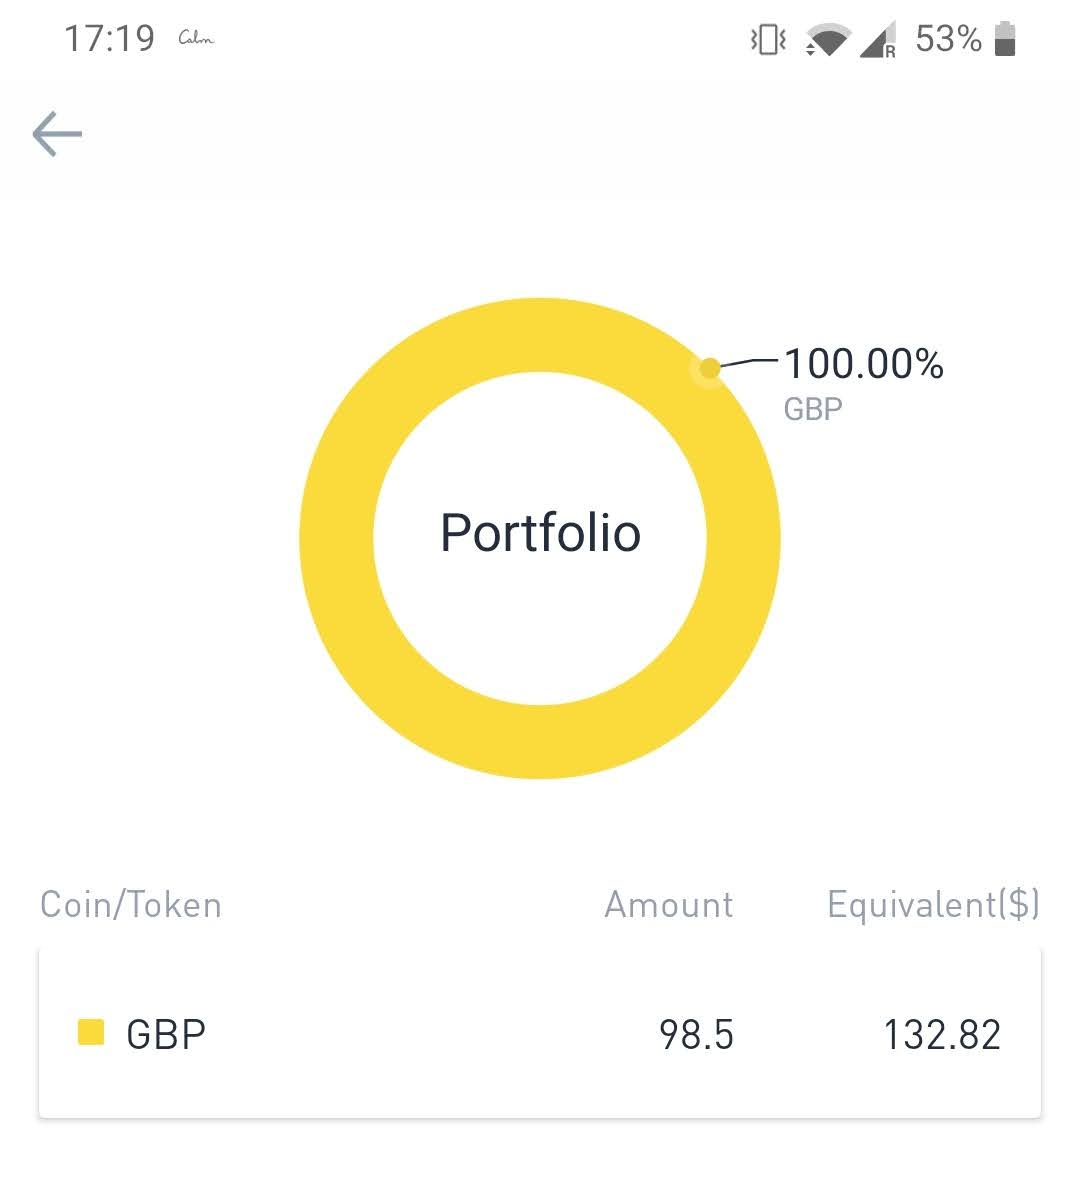 GBP deposit binance limited company